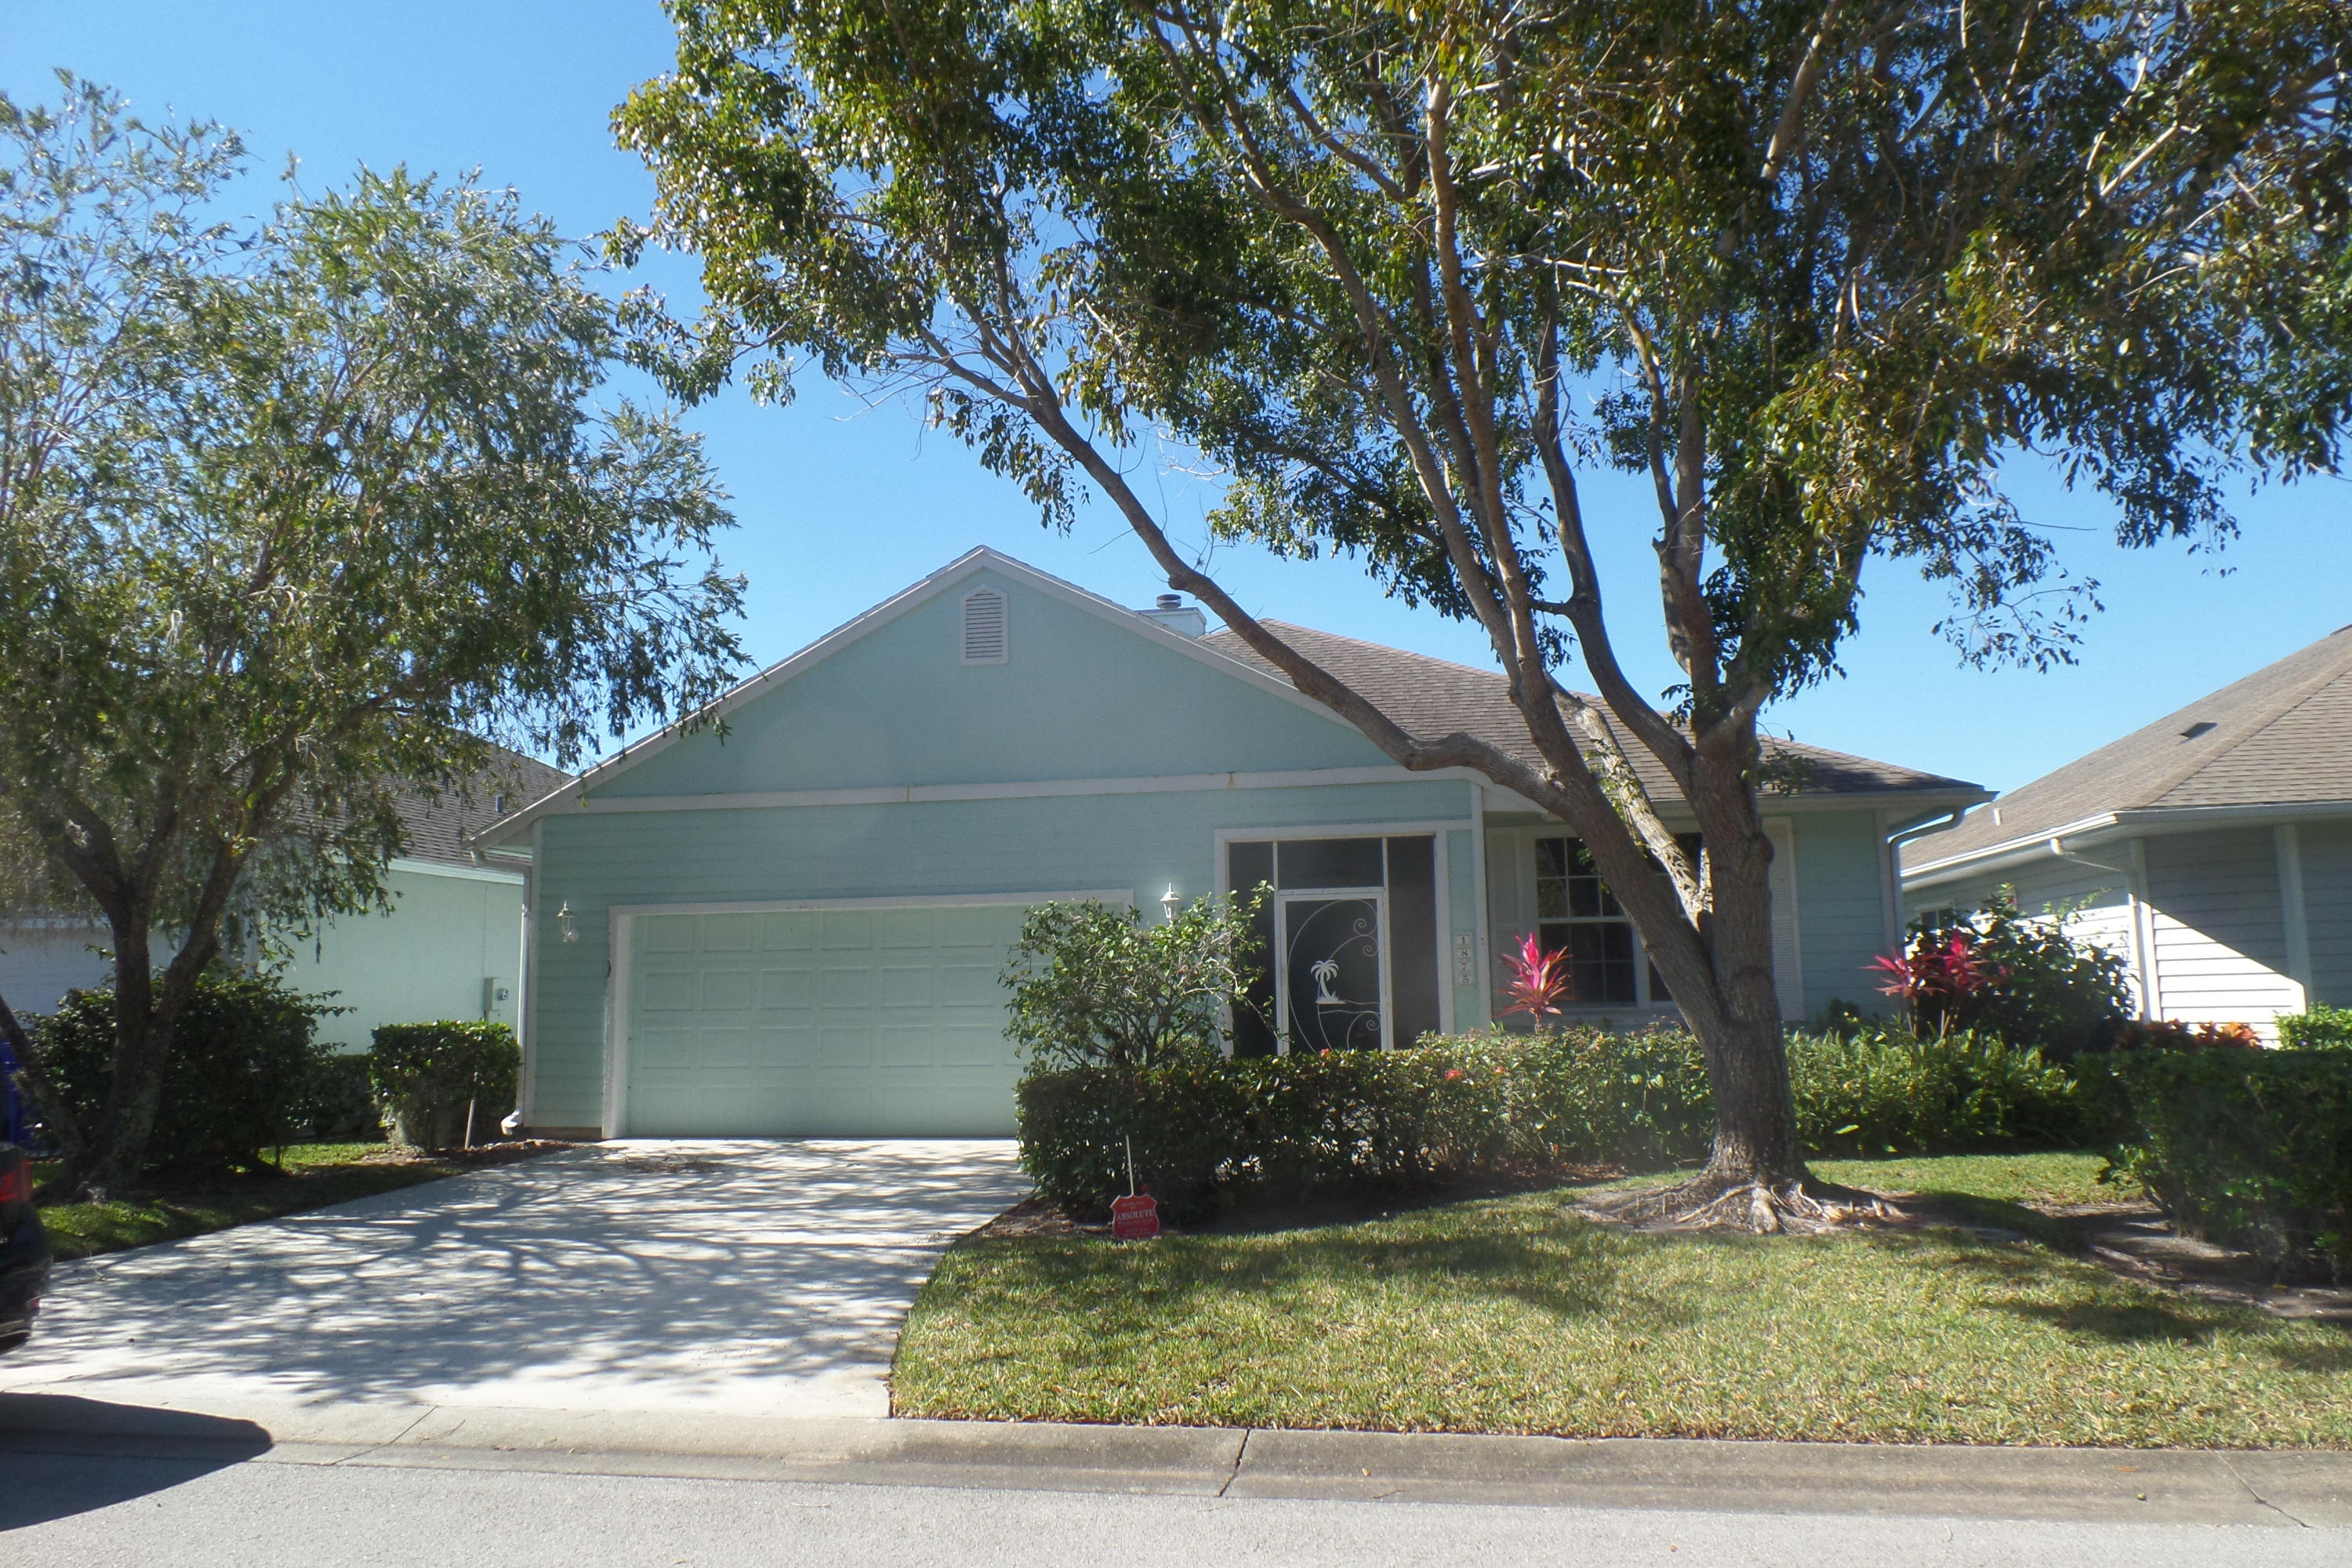 Vero Beach Florida 2 Bedroom Homes For Rent Byownercom